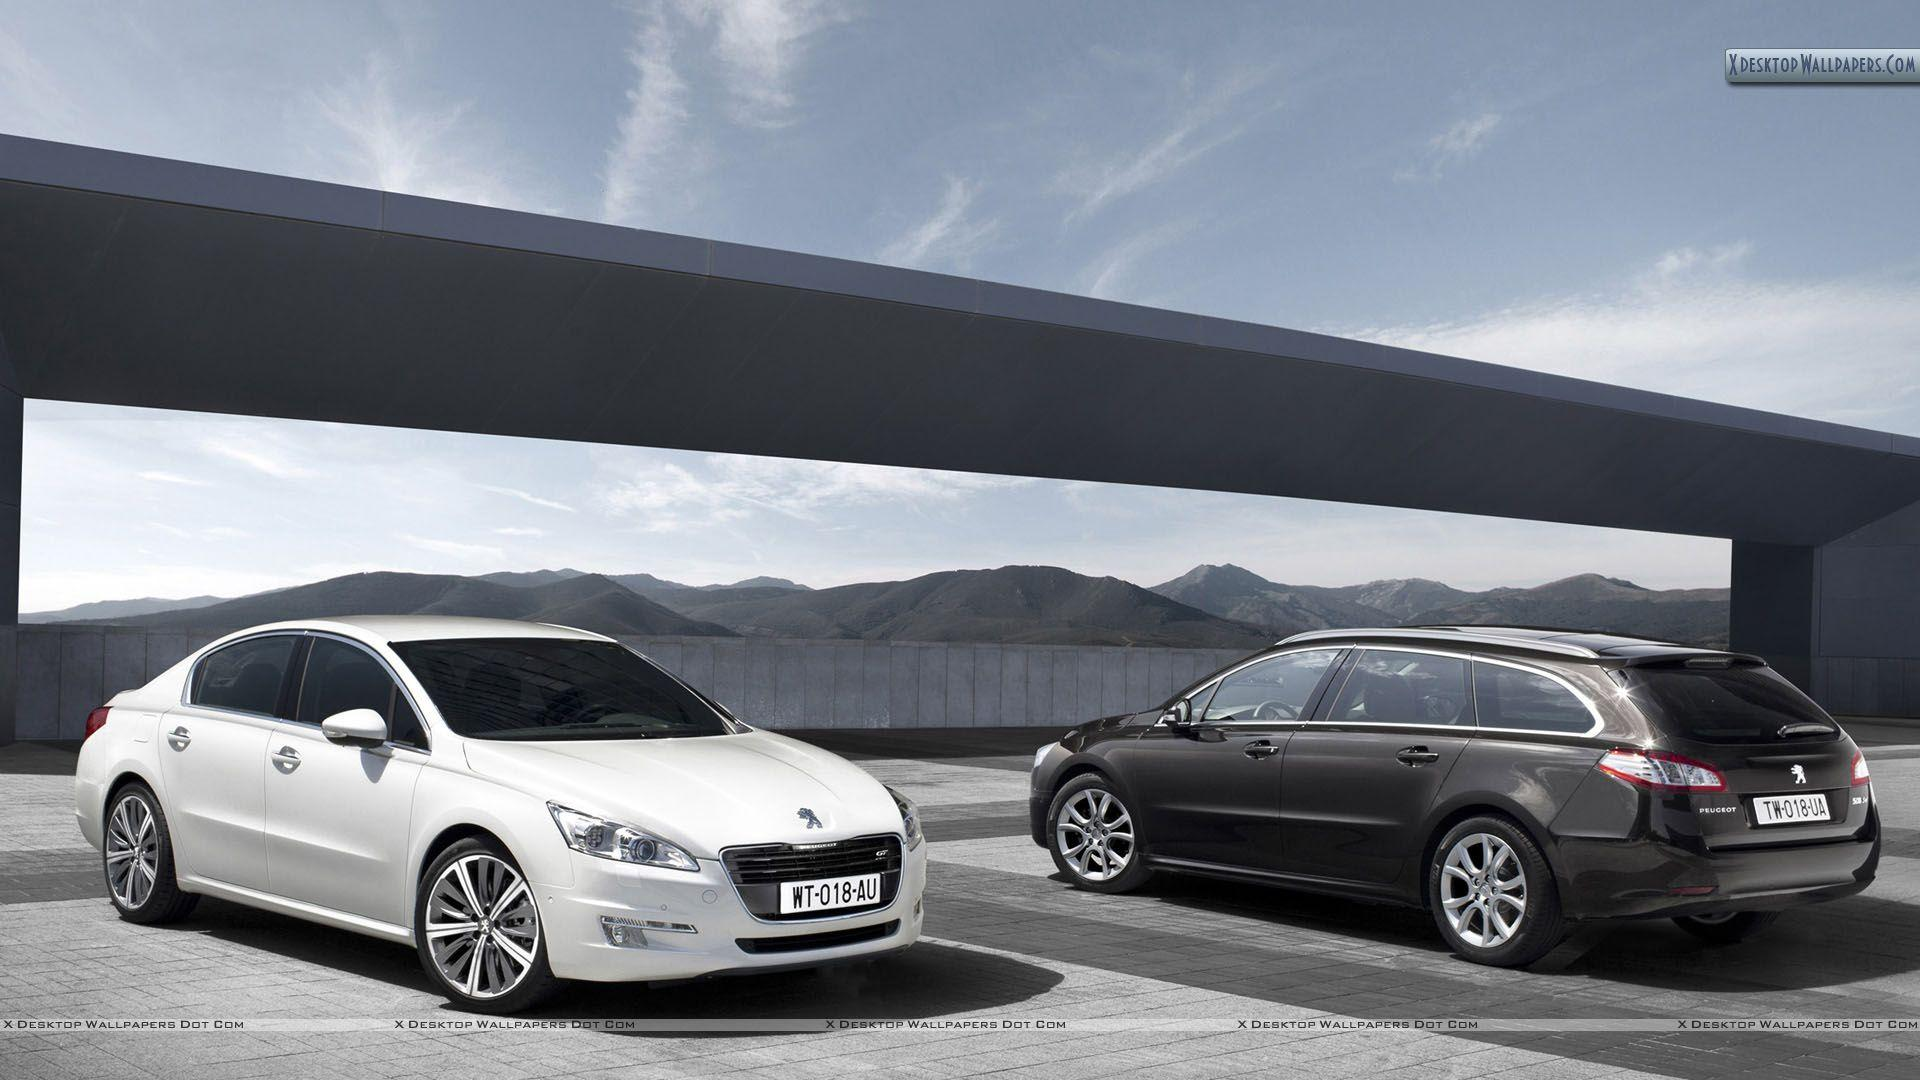 Peugeot 508 Wallpapers, Photos & Image in HD